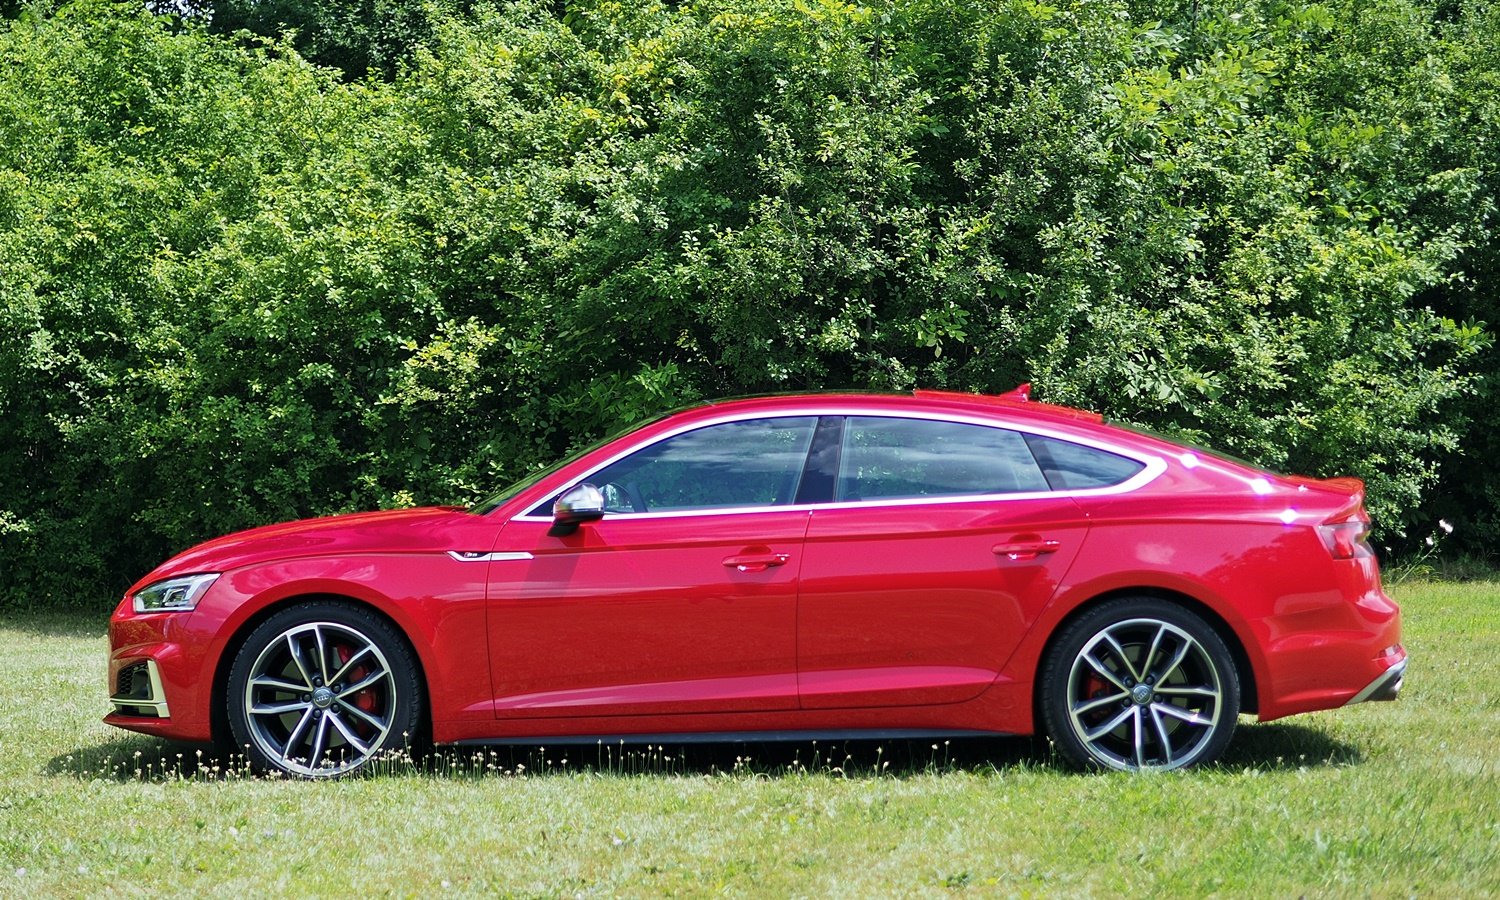 Kia Stinger Photos: Audi S5 Sportback side view